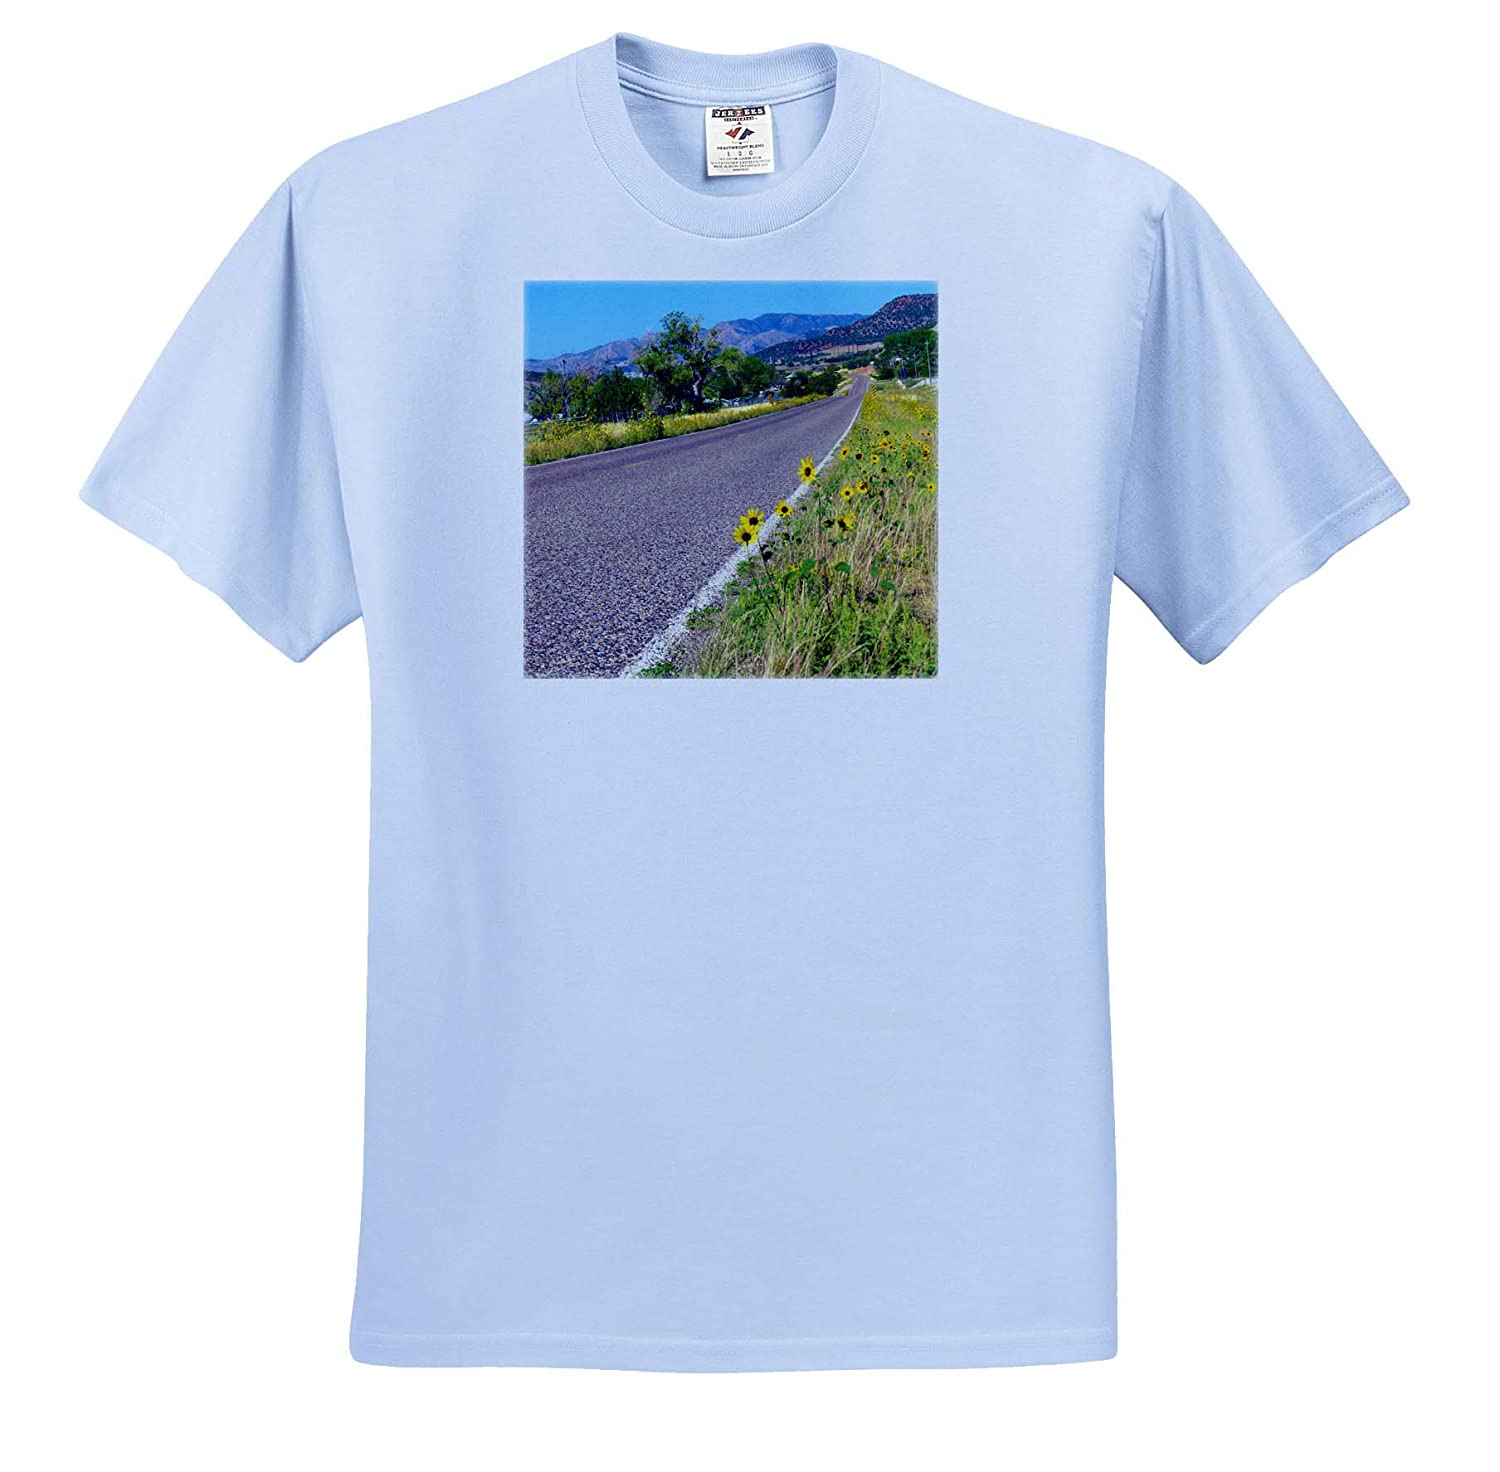 3dRose Jos Fauxtographee T-Shirts The Road in Central Utah Lined with Yellow Flowers Central Road Lined with Flowers